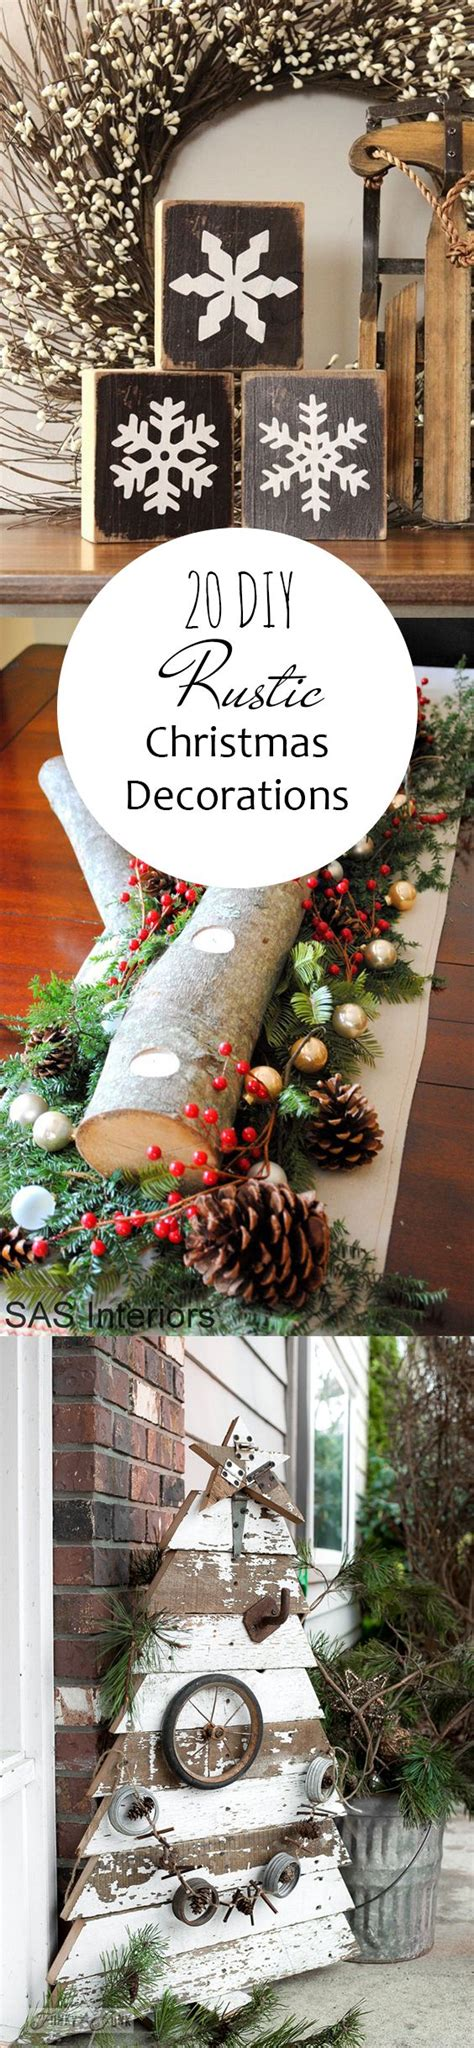 20 beautiful rustic ideas for christmas decorations 14